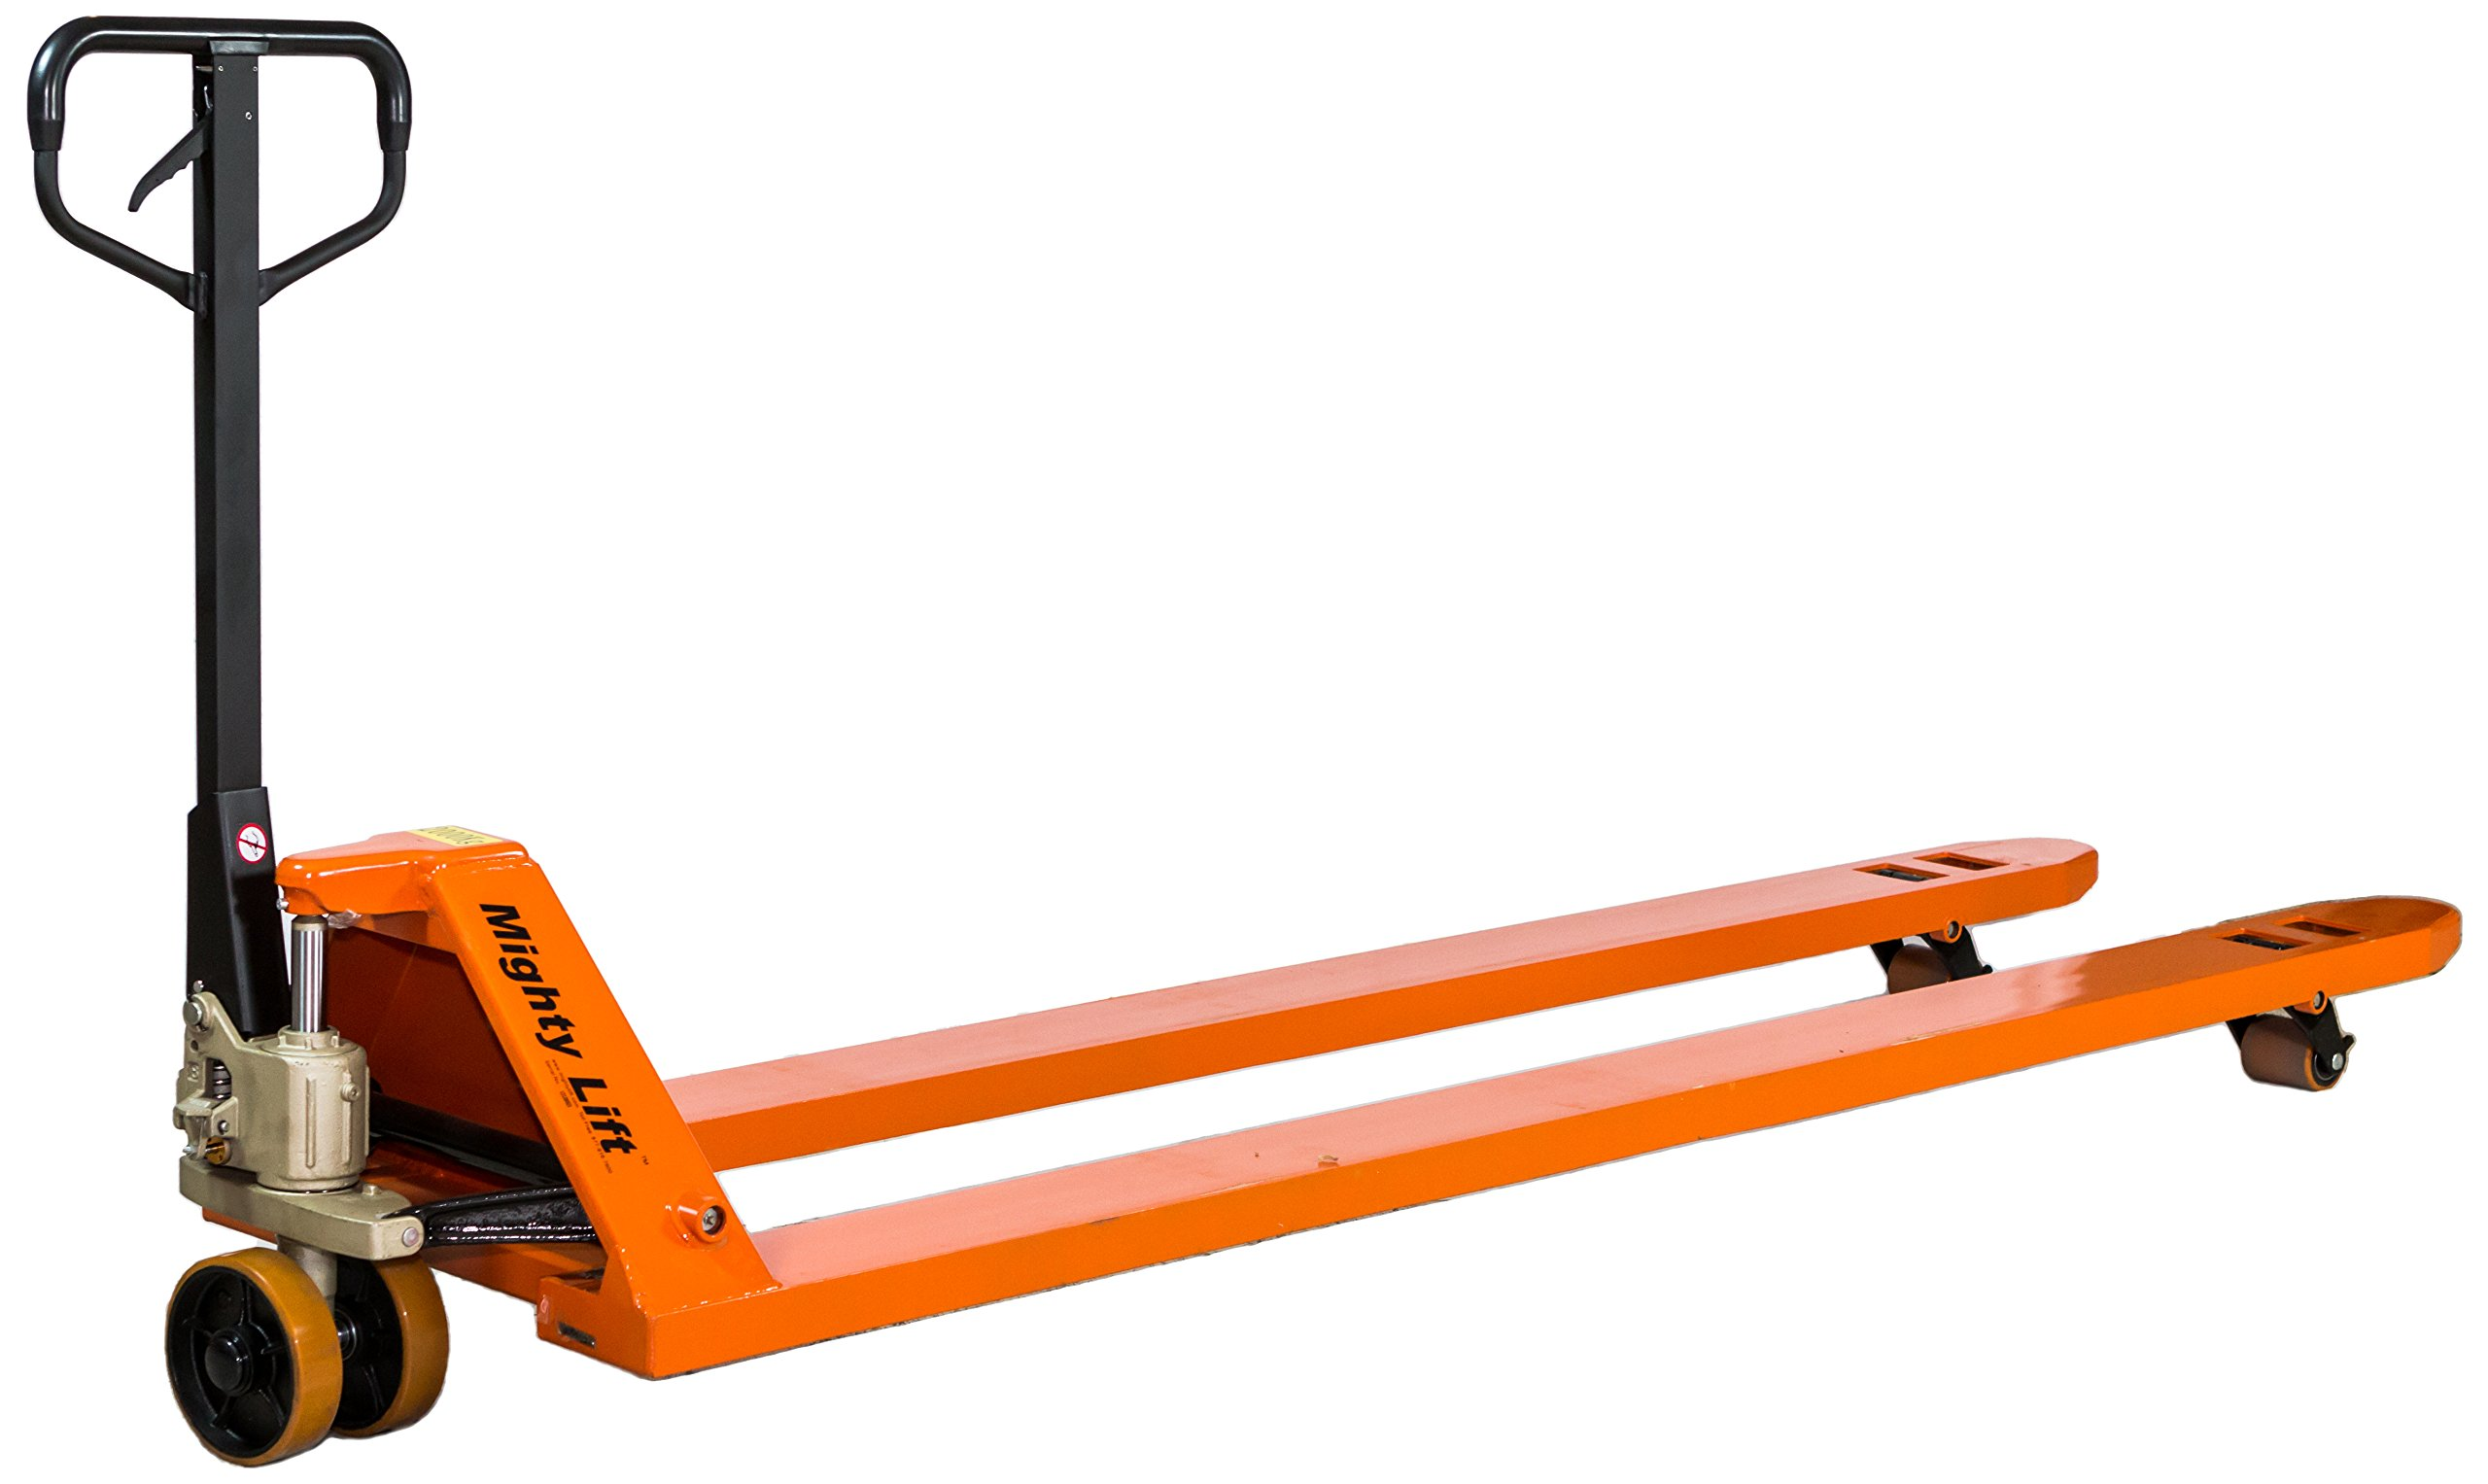 "Mighty Lift ML2796-2 Heavy Duty Pallet Jack Truck, Wheels: Polyurethane on Steel., 50"" Height, 27"" width, 108"" Length, 4400 lbs. Load Capacity, Orange"